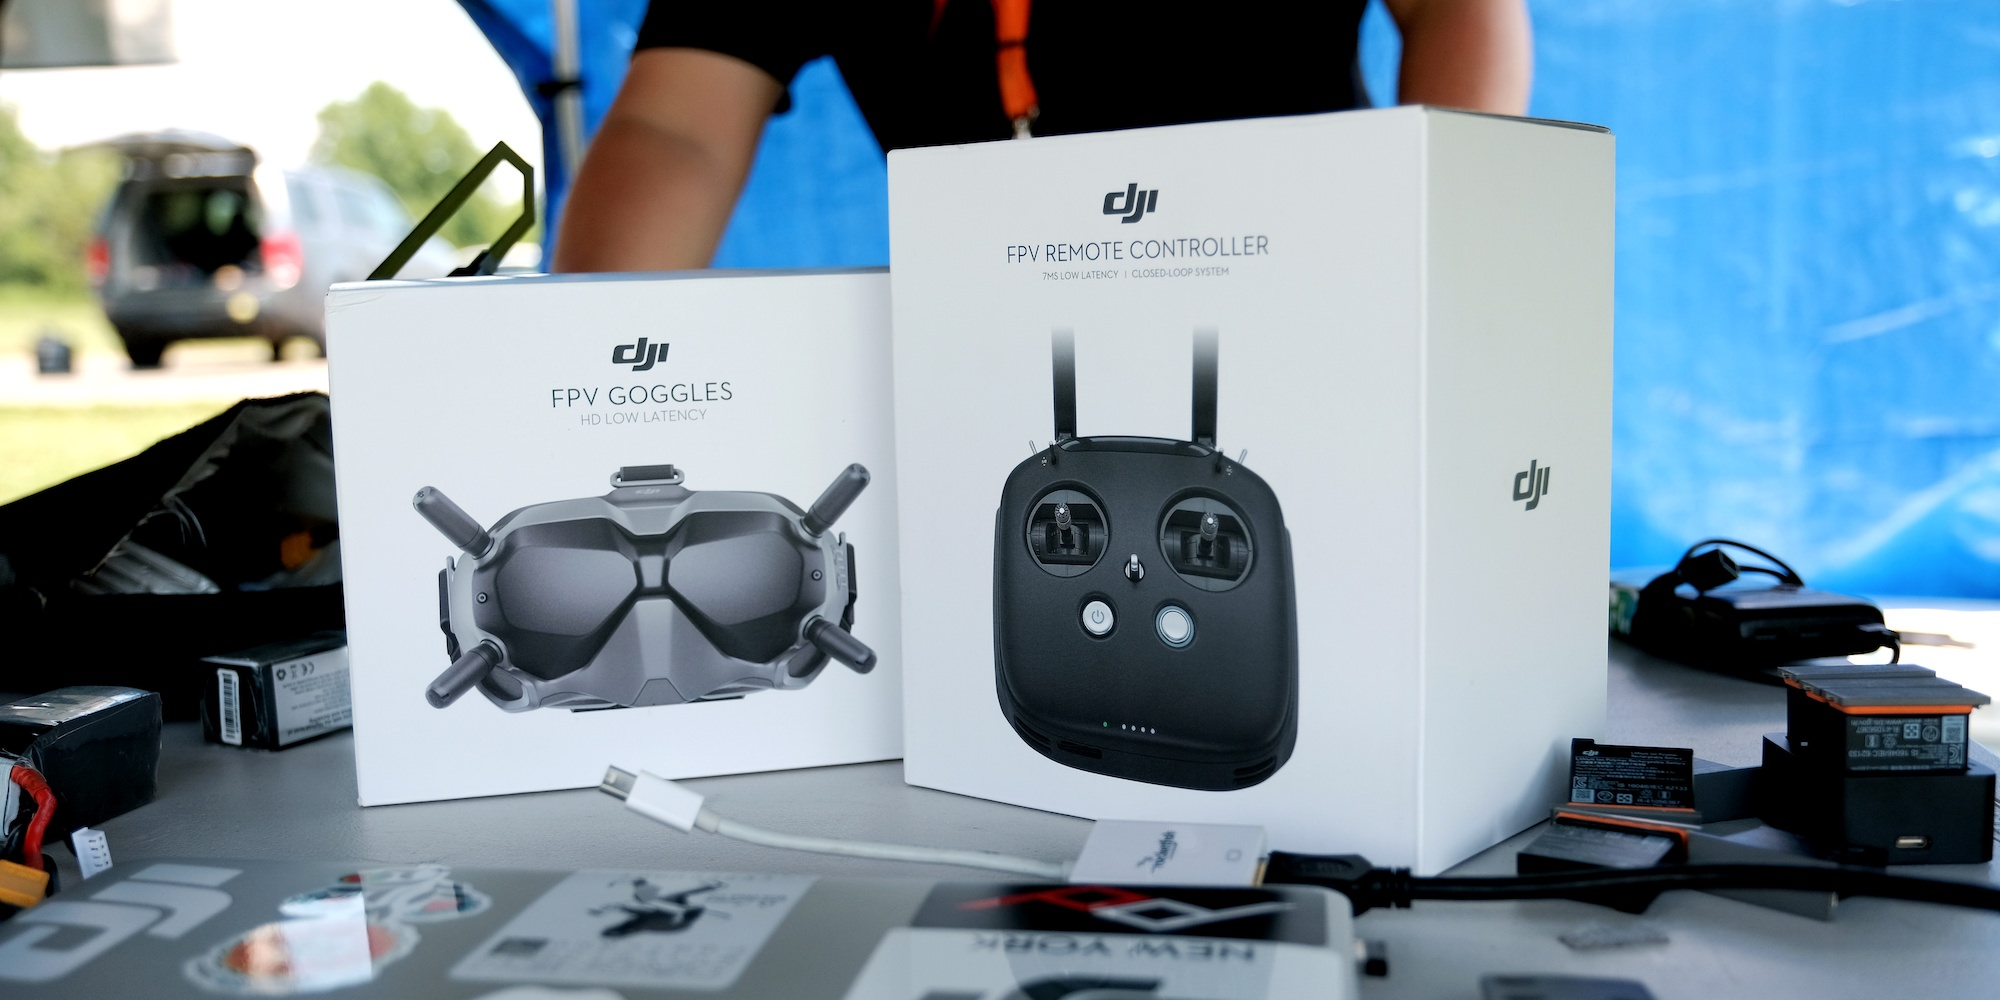 DJI Digital FPV Transmission System with low latency and HD video